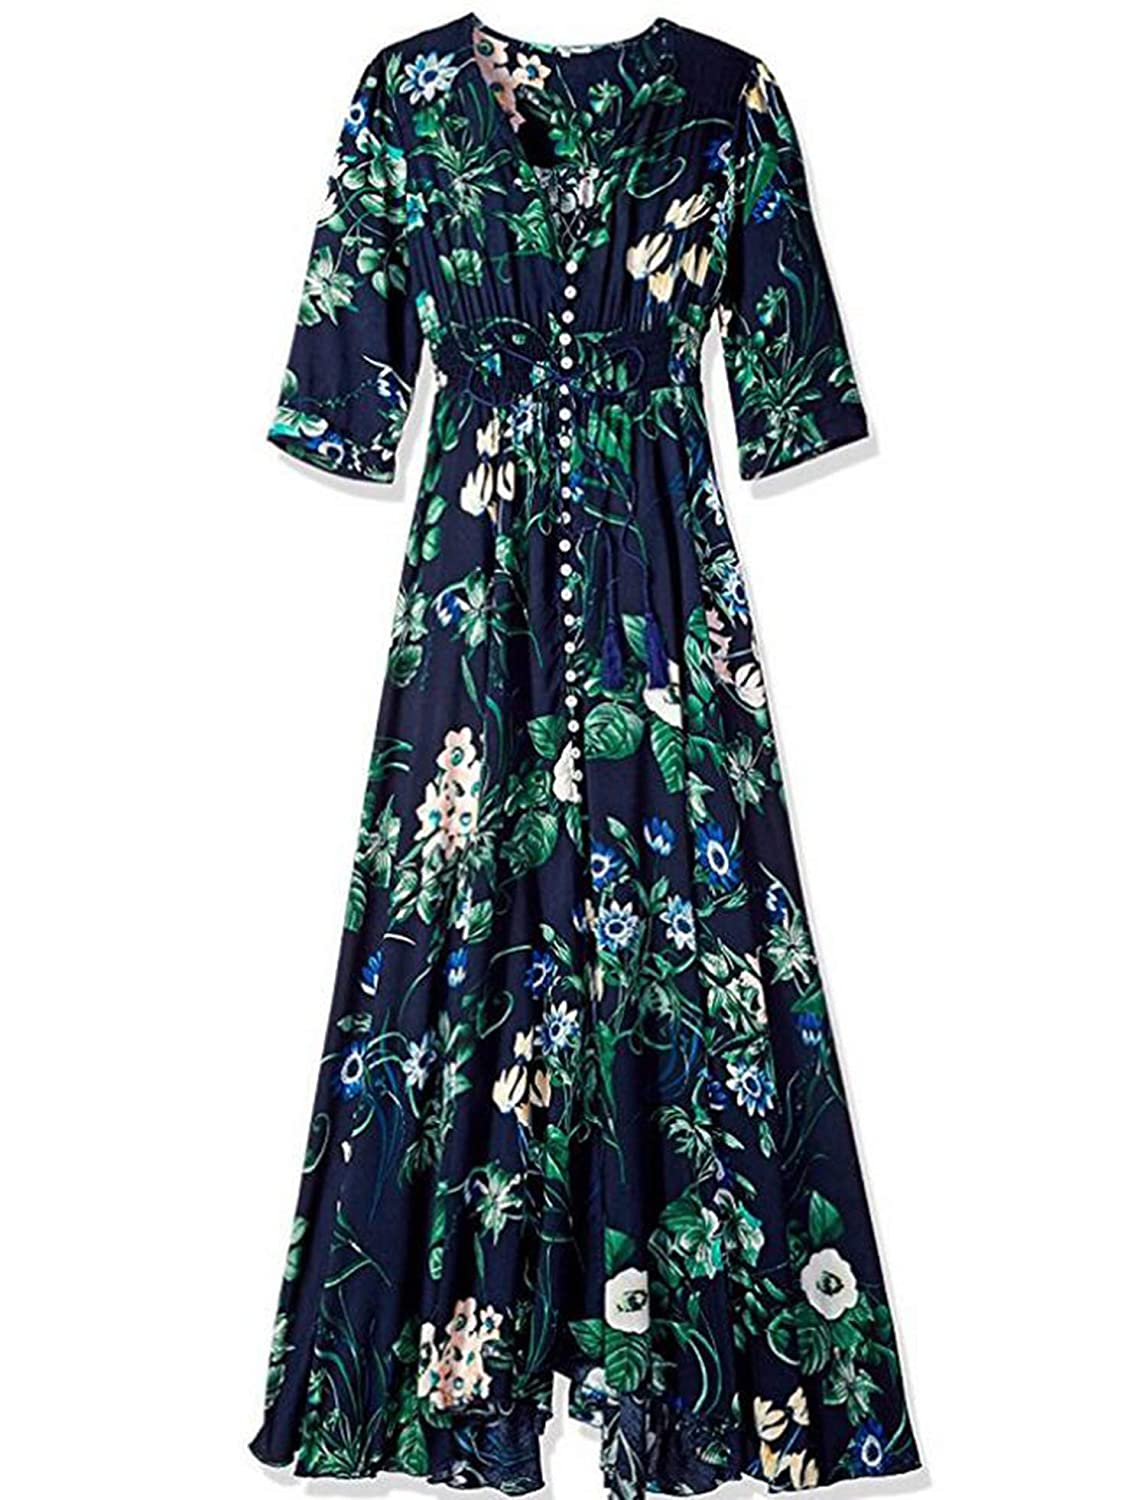 D Ladies Dresses Summer Dress Women Maxi Sundress Button Up Split Floral Print Flowy Evening Party Female Long Dresses Vestidos